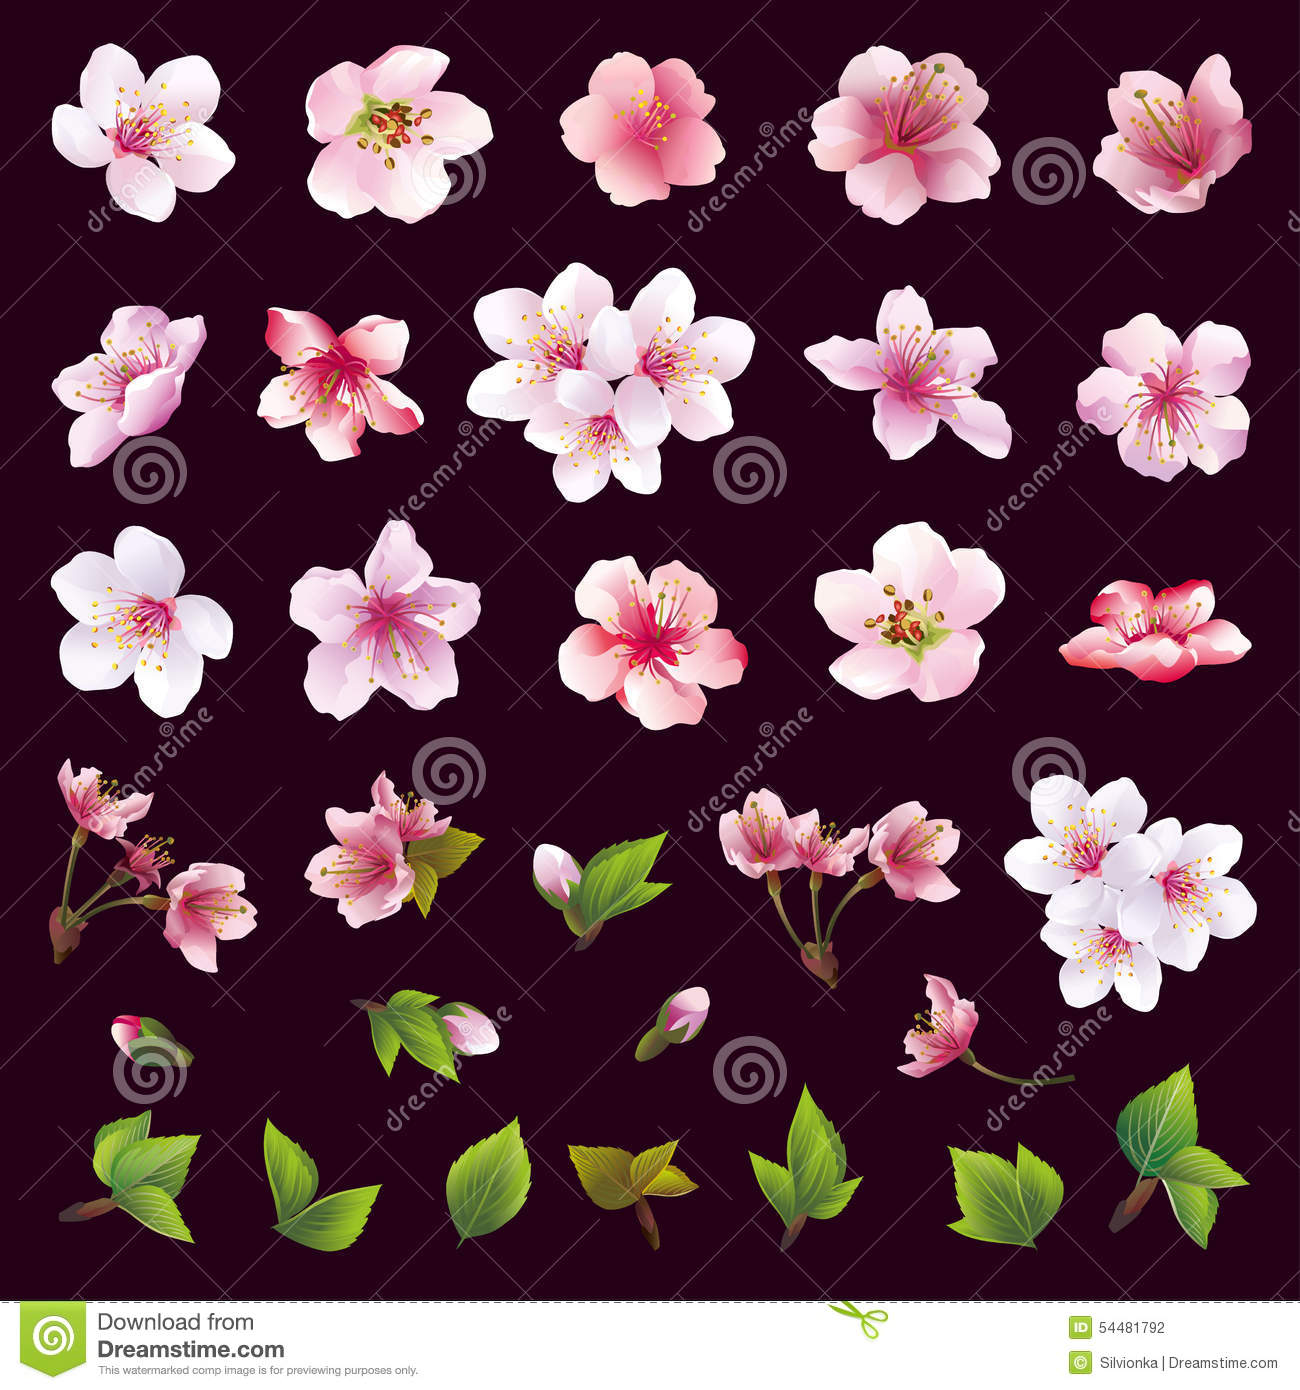 Set of flowers of cherry tree and leaves stock vector illustration big set of different beautiful cherry tree flowers and leaves on black background collection of white pink purple sakura blossom japanese cherry tree mightylinksfo